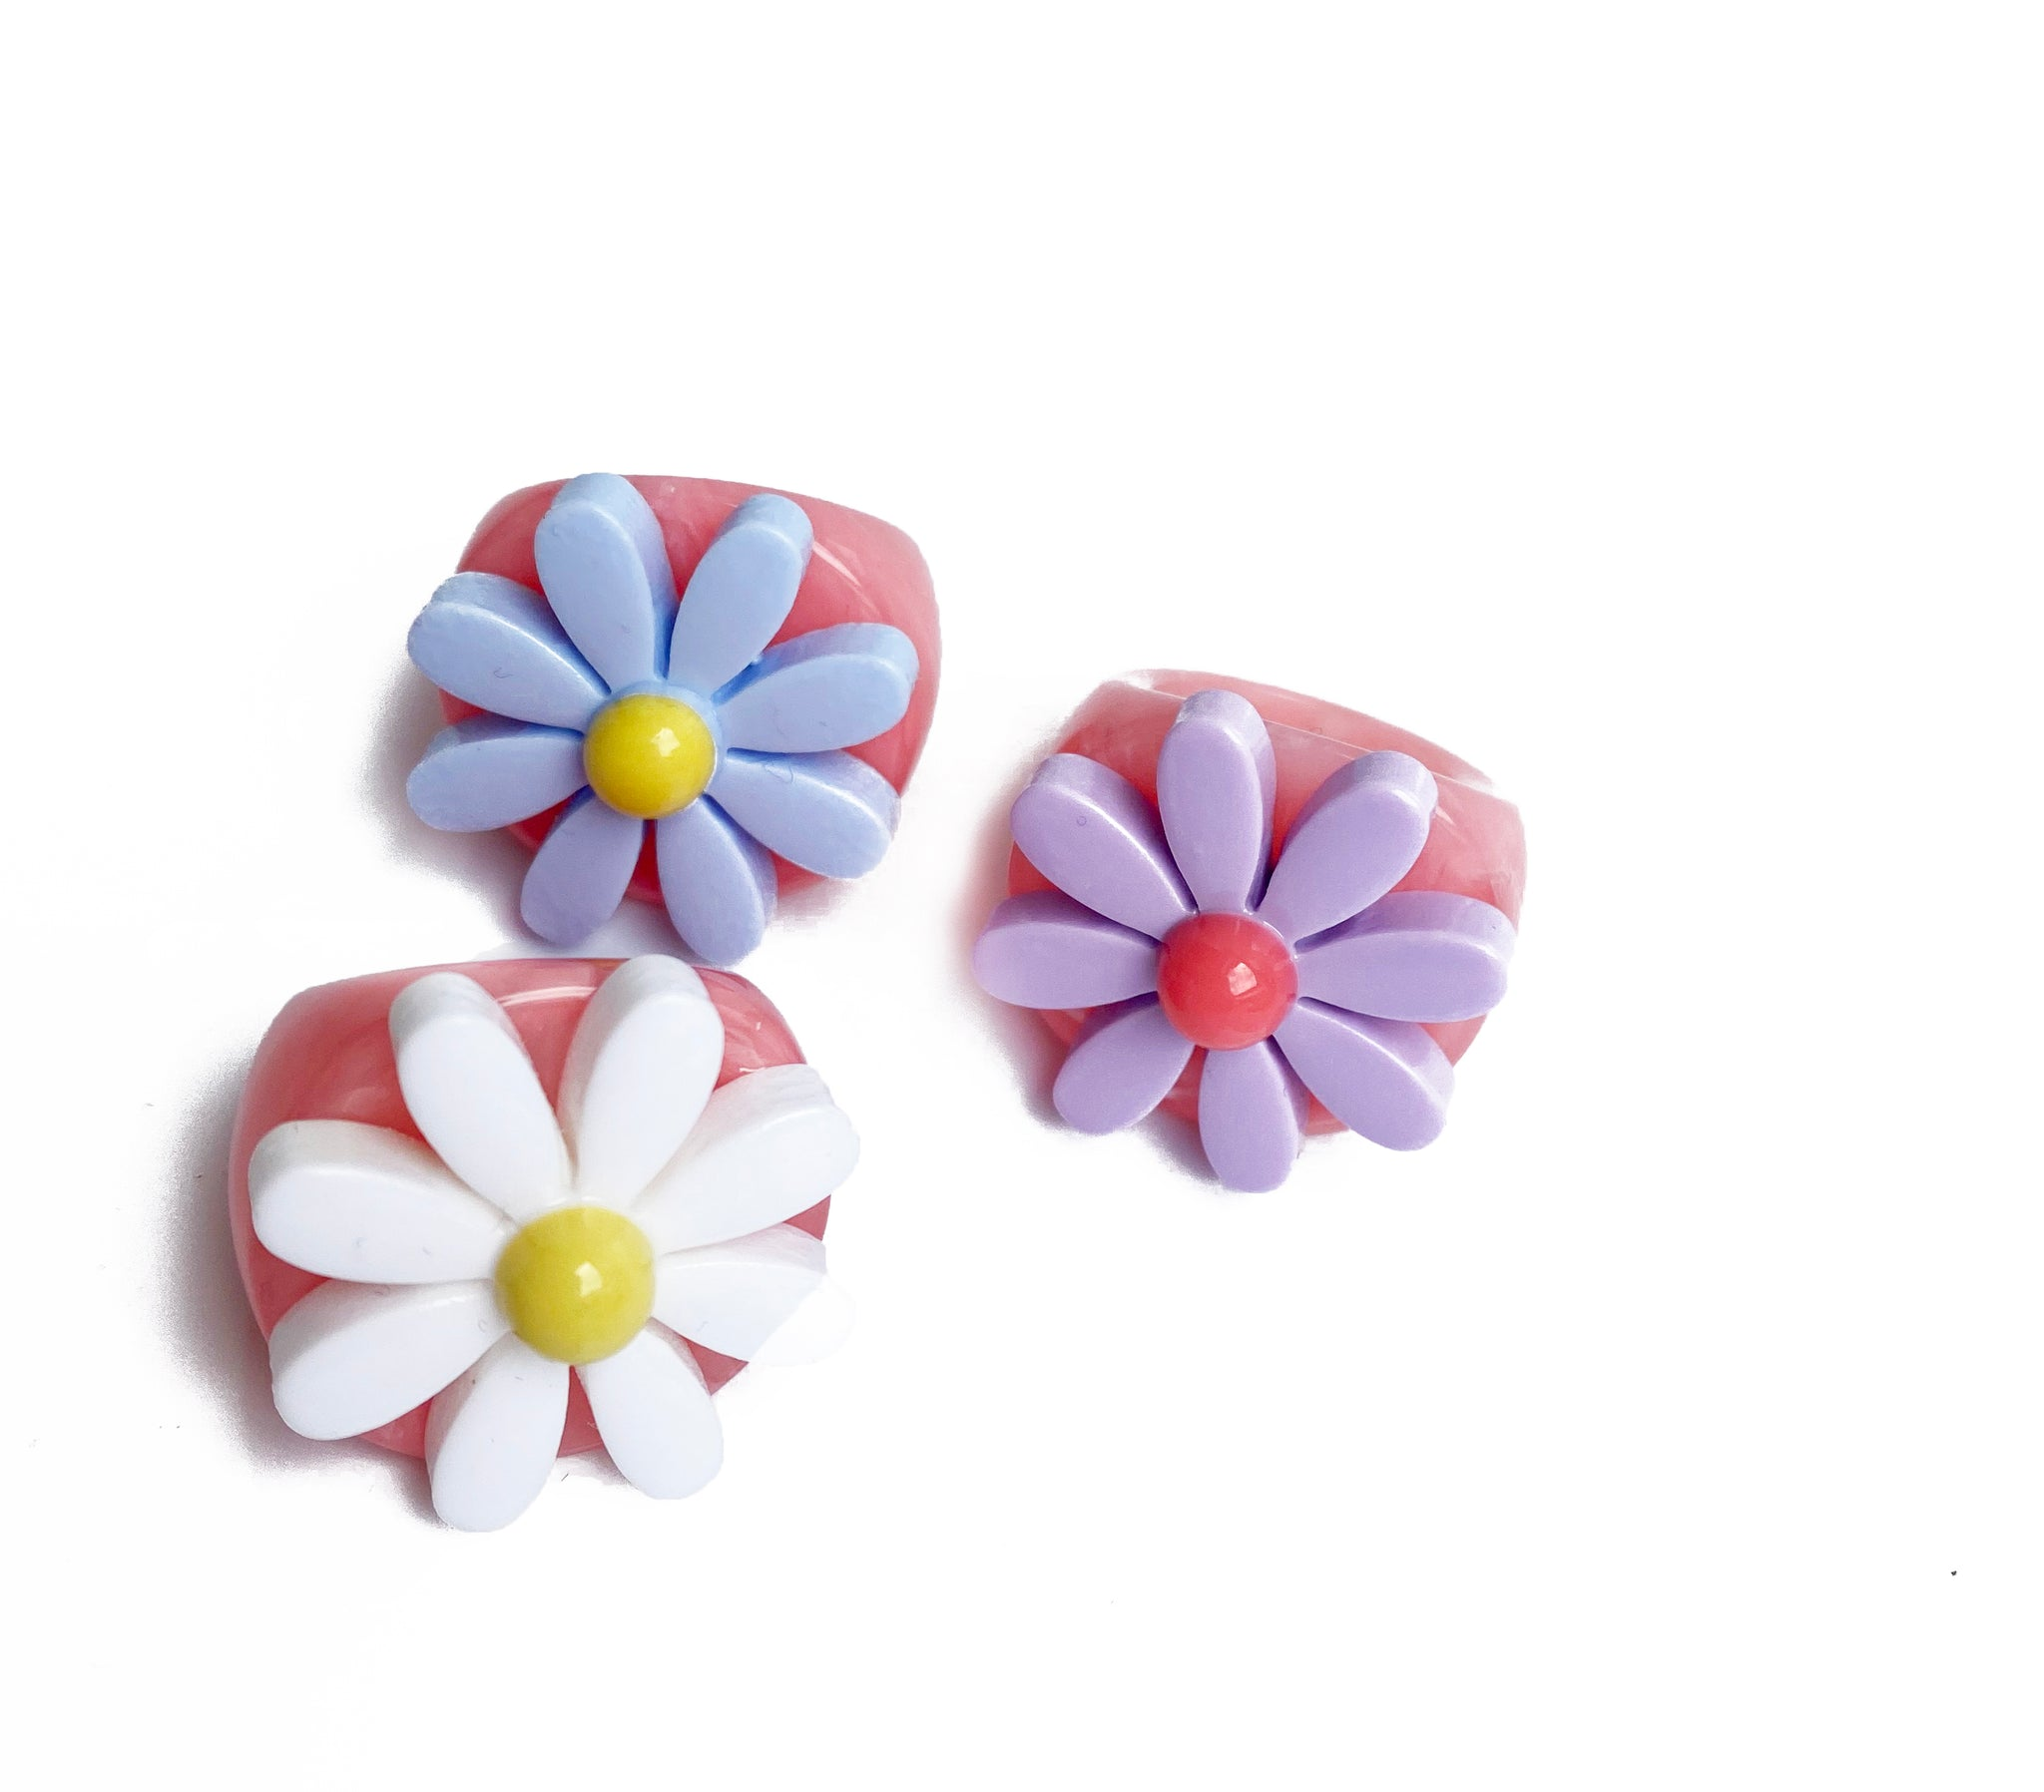 3 resin bubble rings with pink bases and flowers on the front. One is white with a yellow base, one is purple with a pink base and the third is blue with a yellow base.